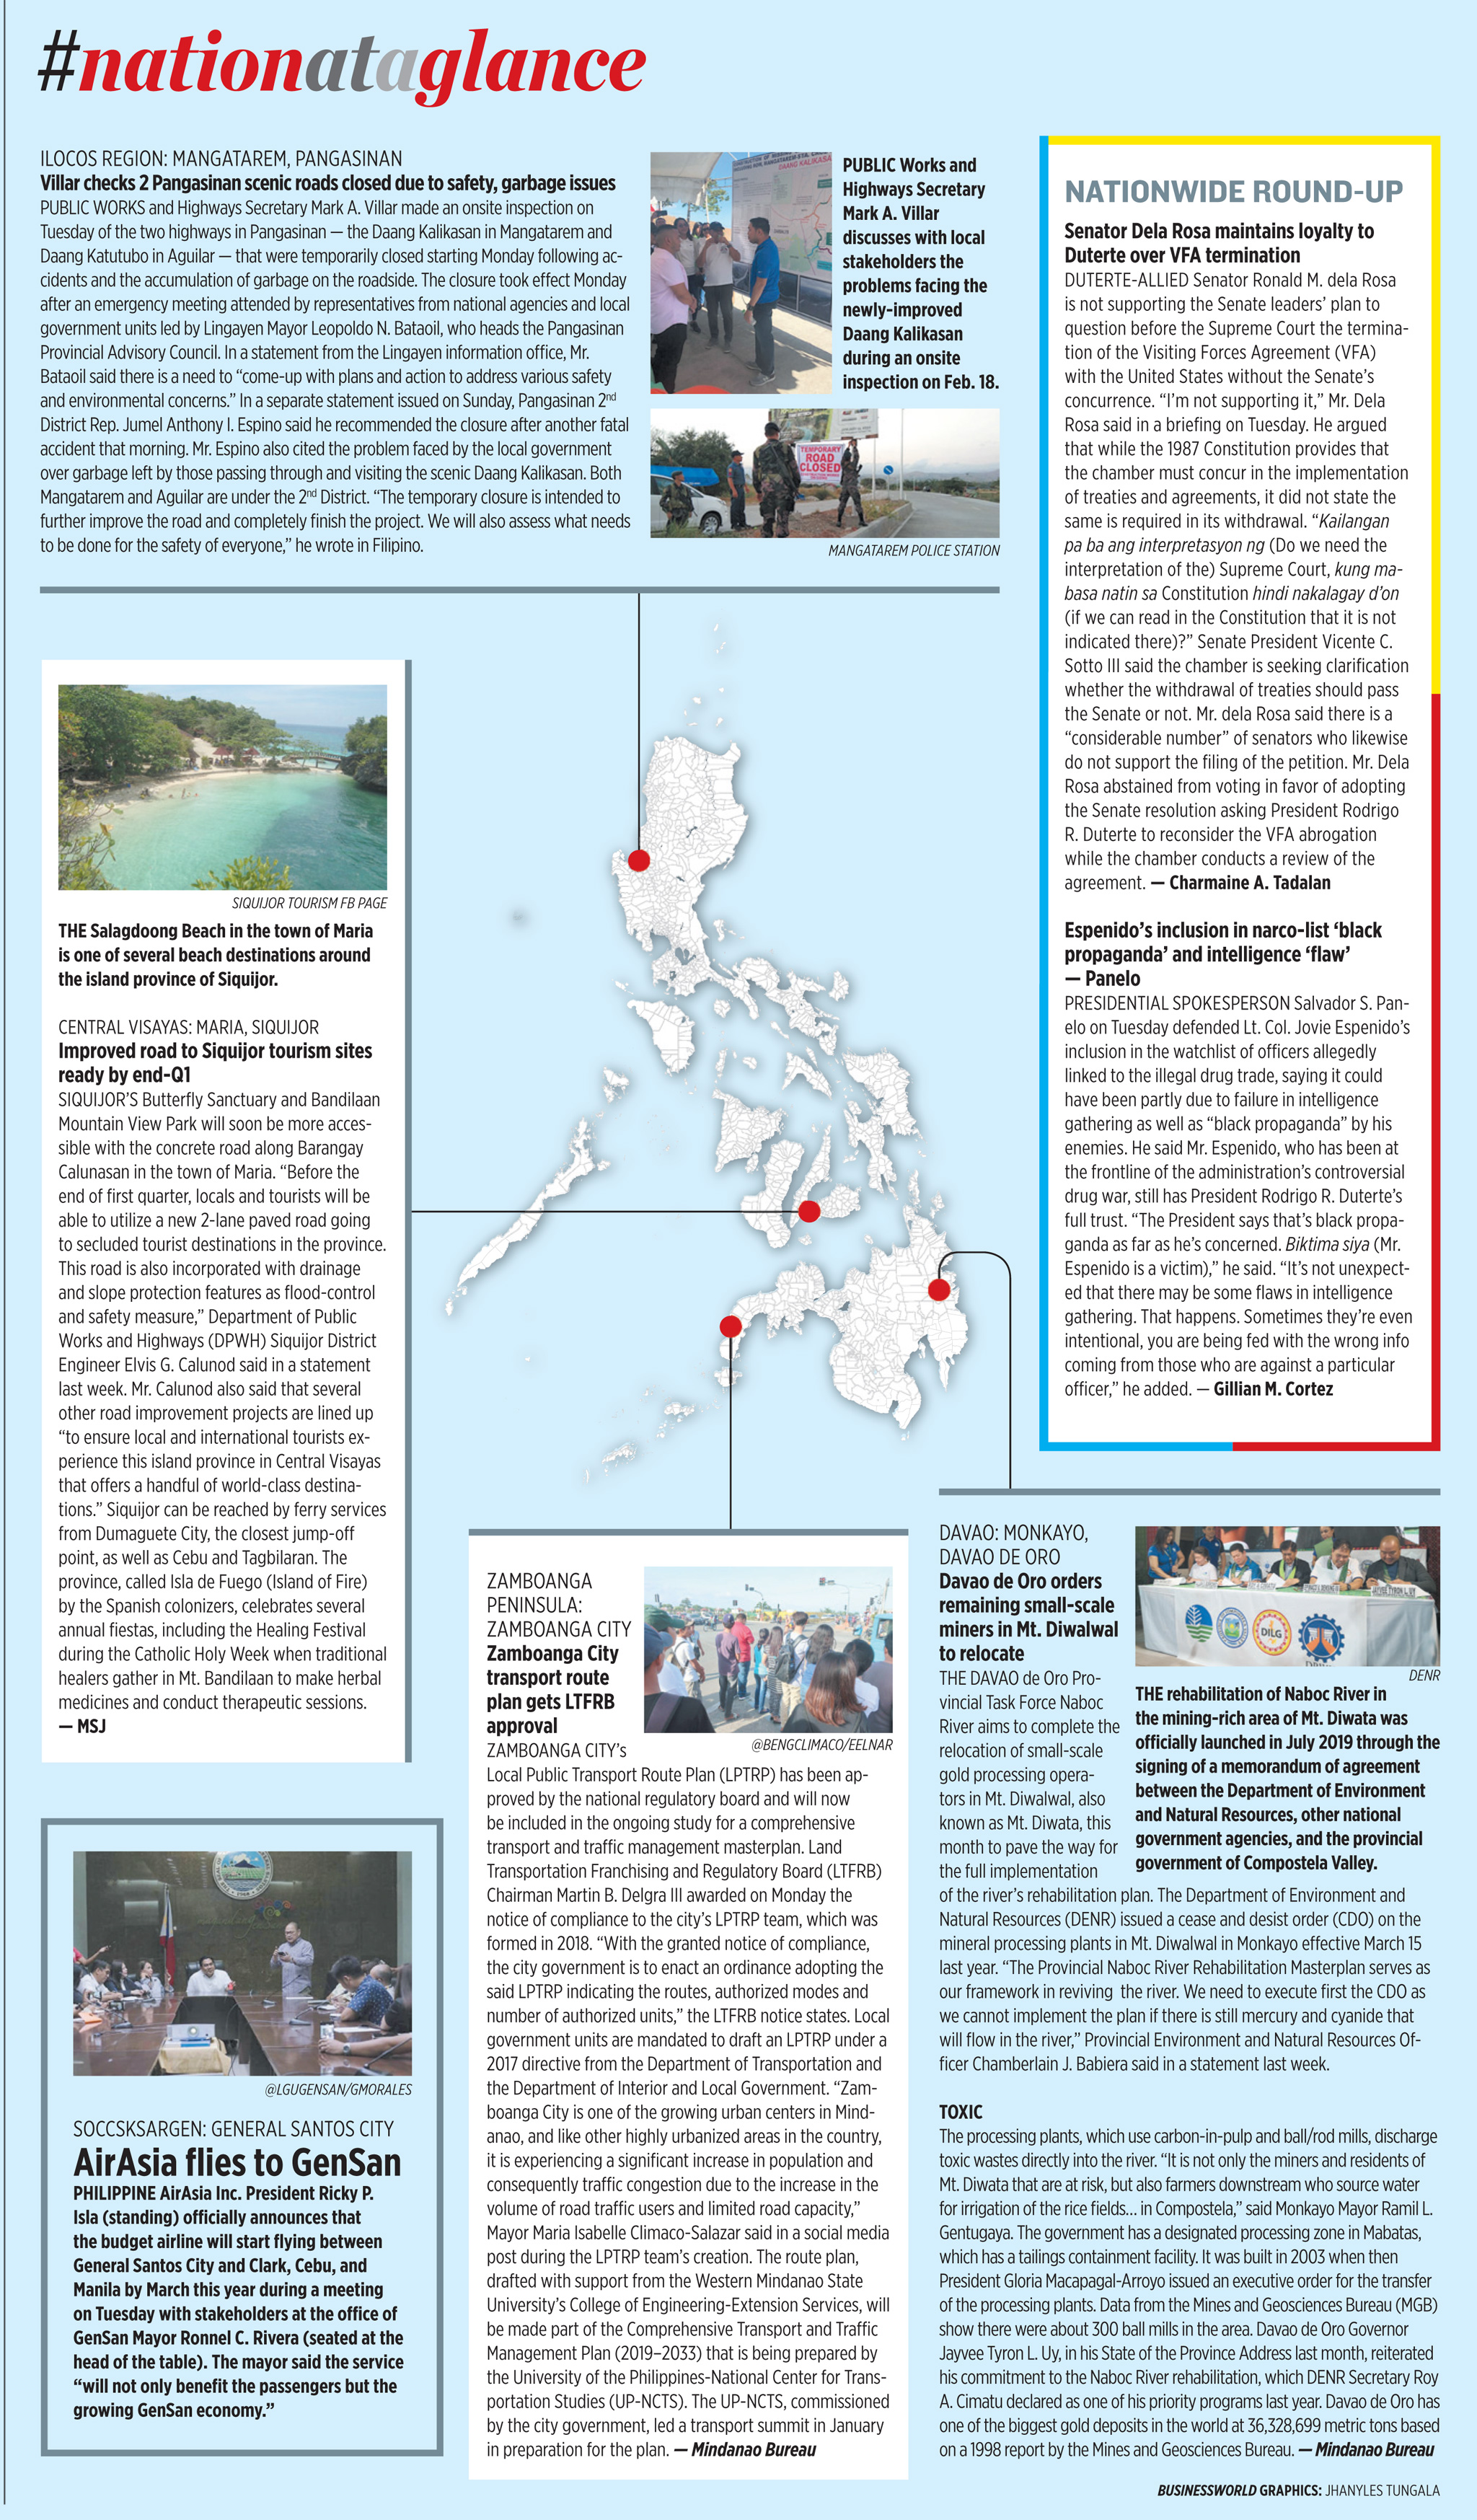 Nation at a Glance — (02/19/20)